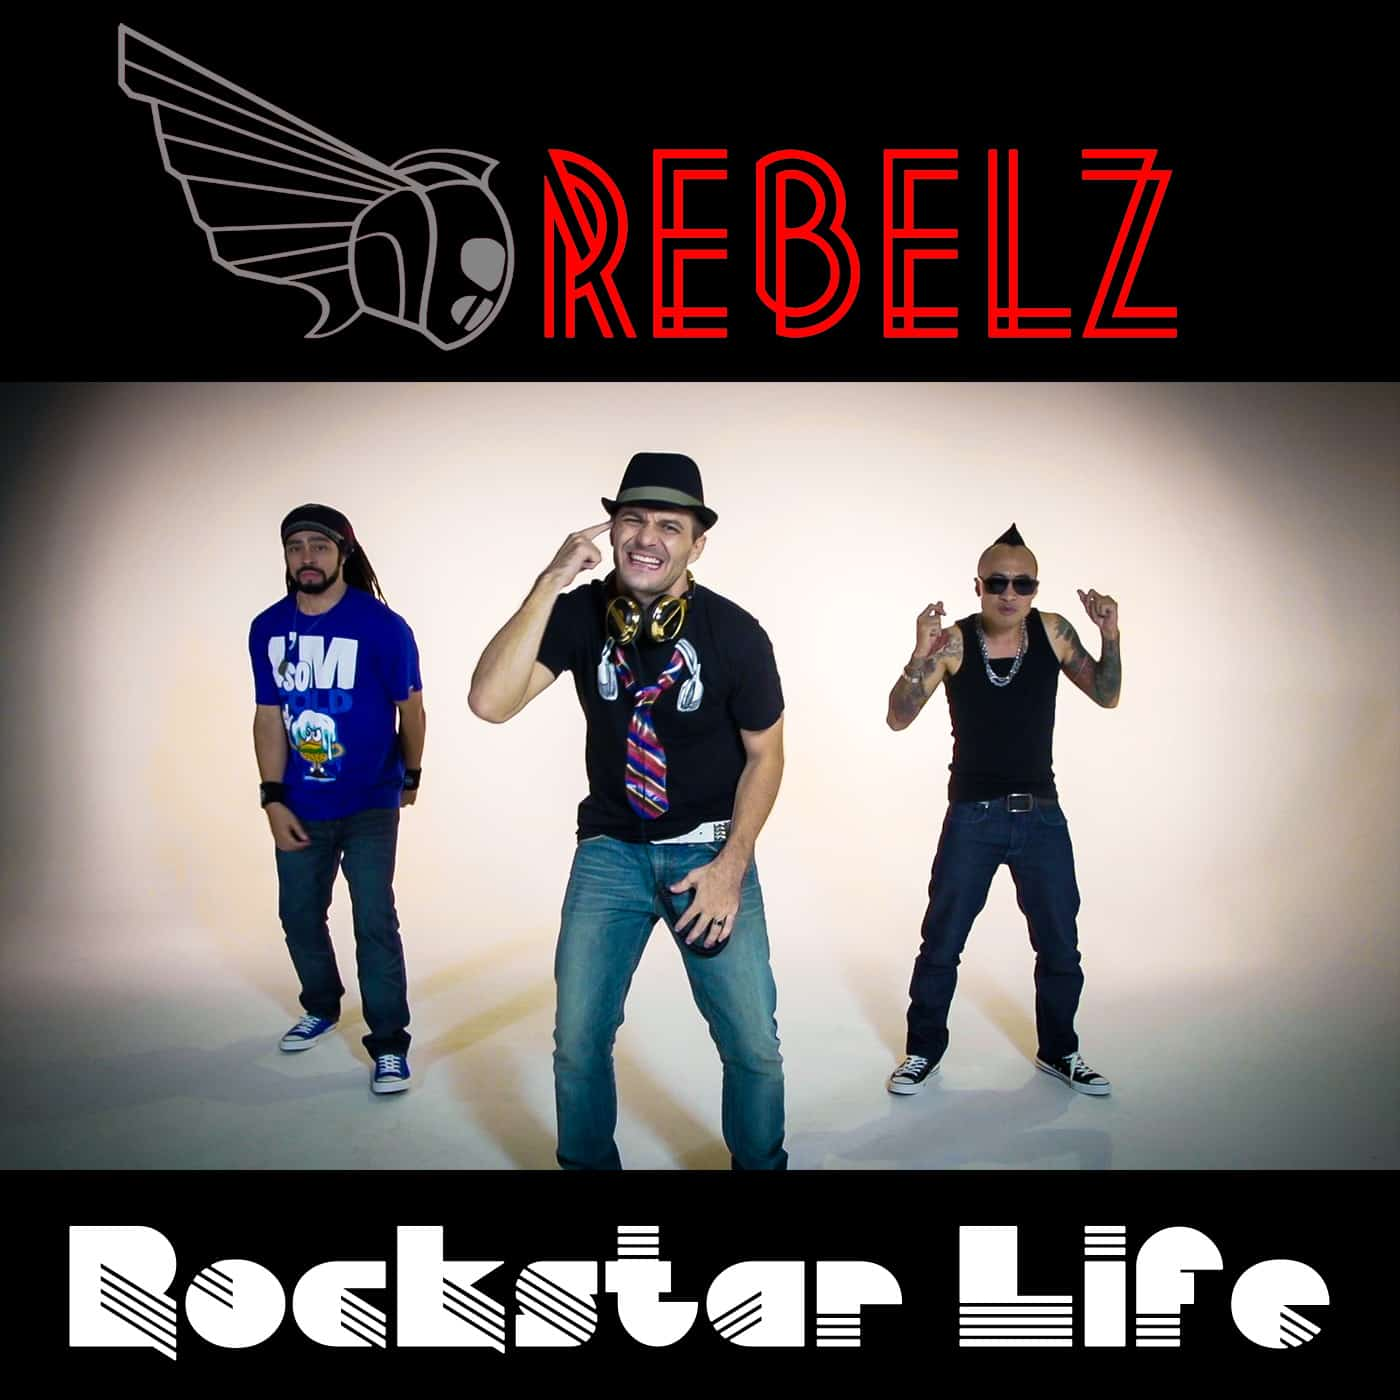 the life of a rock star Songfacts category - songs about rock star excess we send out the songfacts newsletter once a month it contains a big list of the new songs that were added, information on recent interviews, and updates on what's happening in the fishbowl.